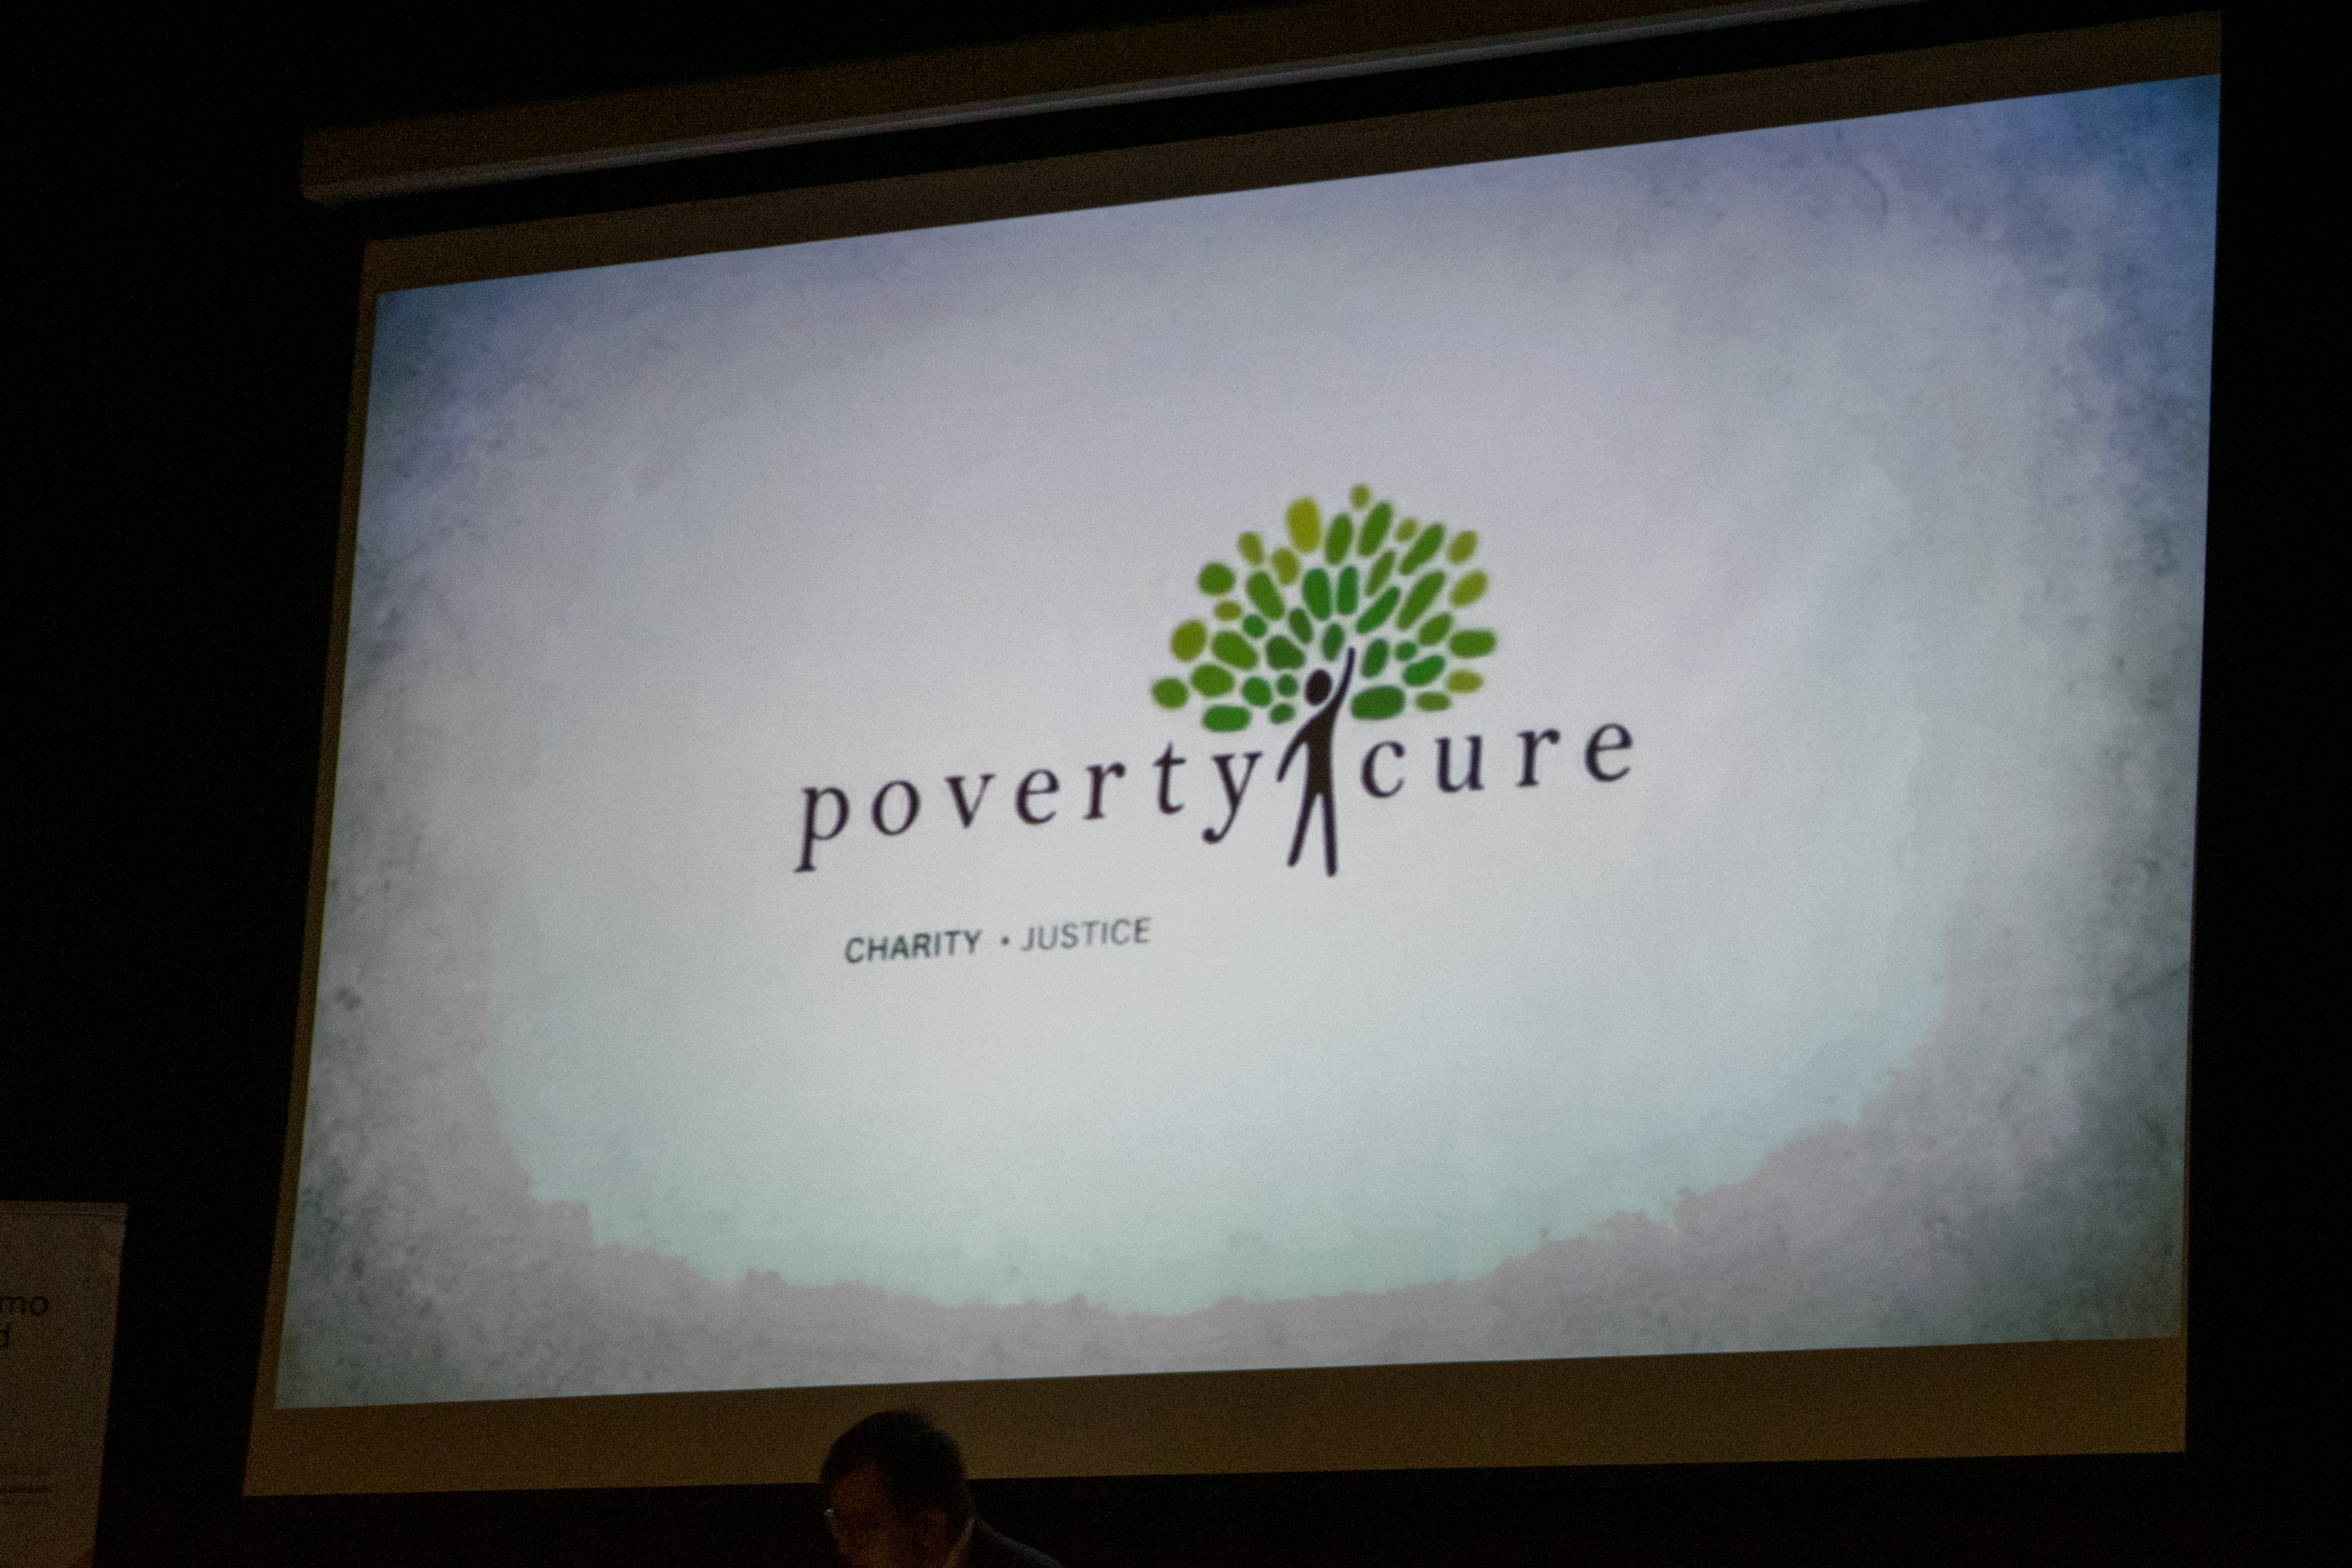 Se realizó la Poverty University en Tucumán